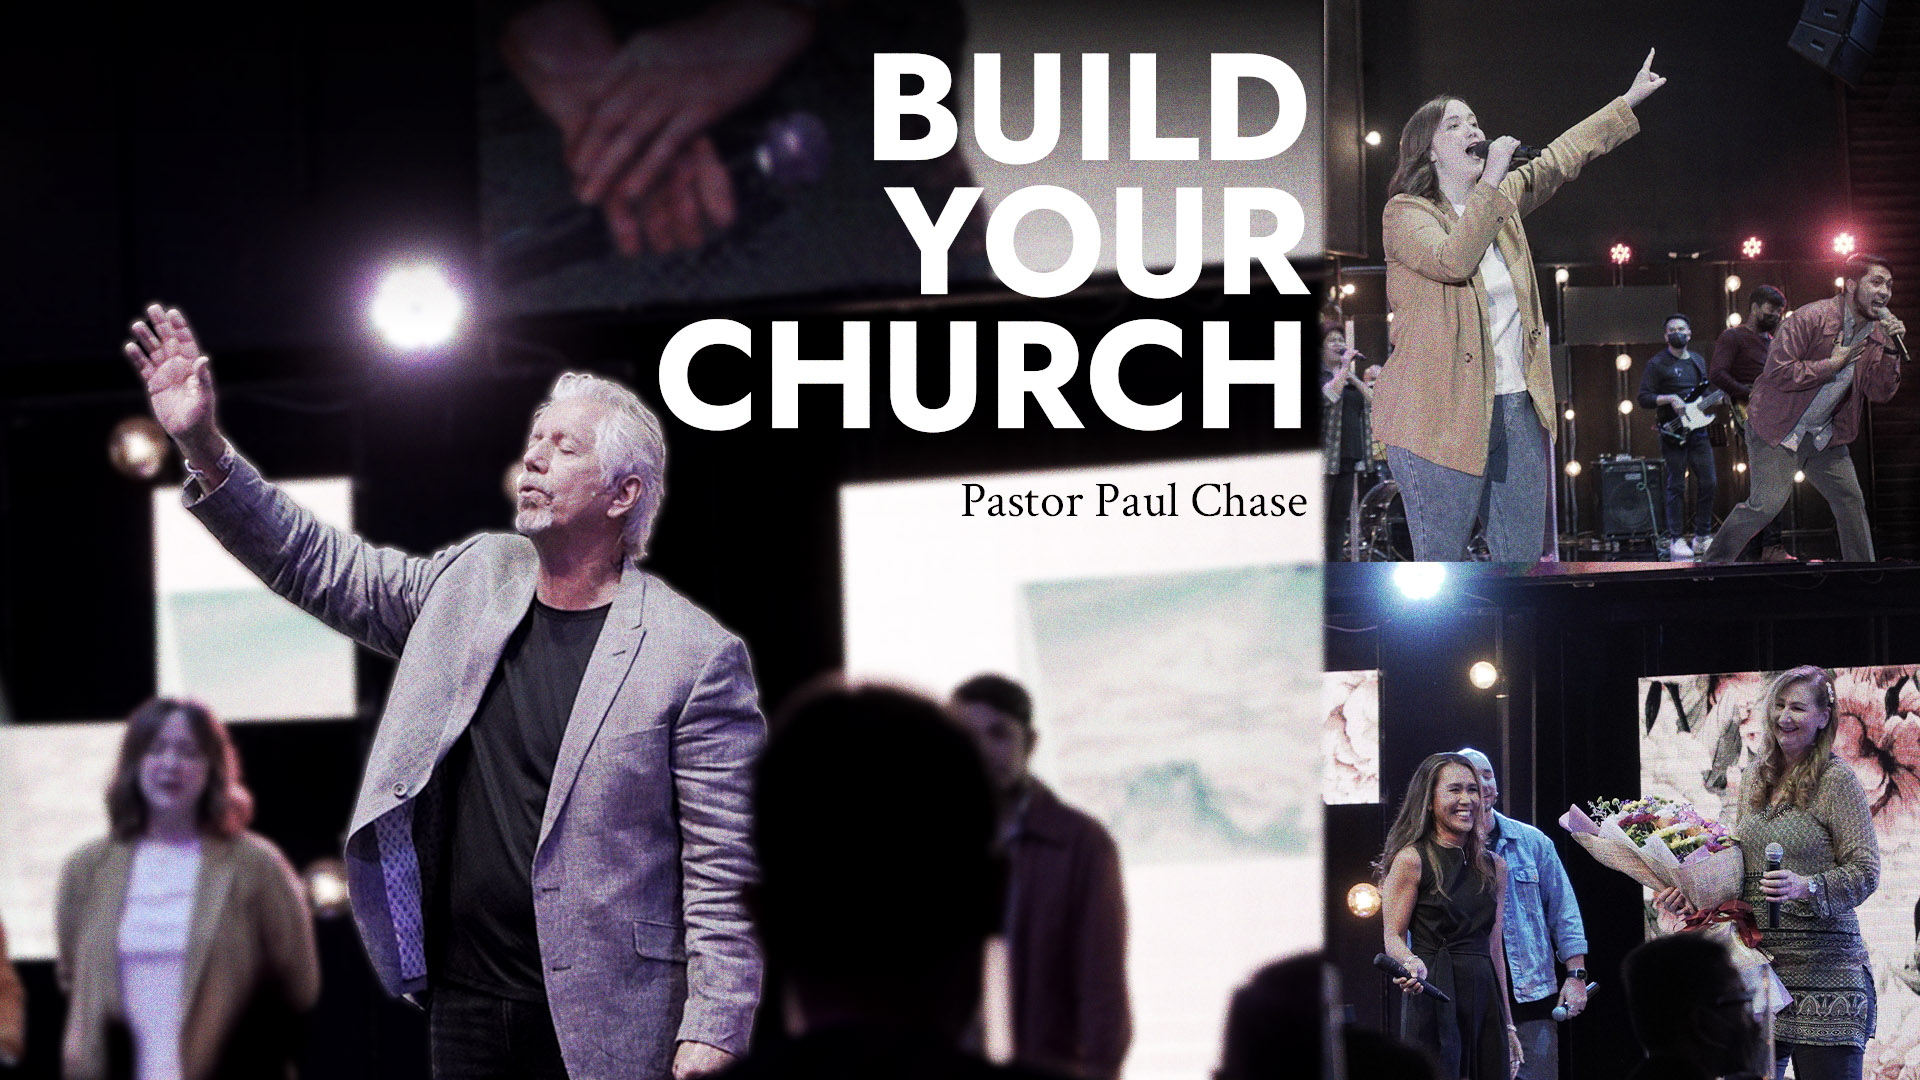 BUILD YOUR CHURCH Image